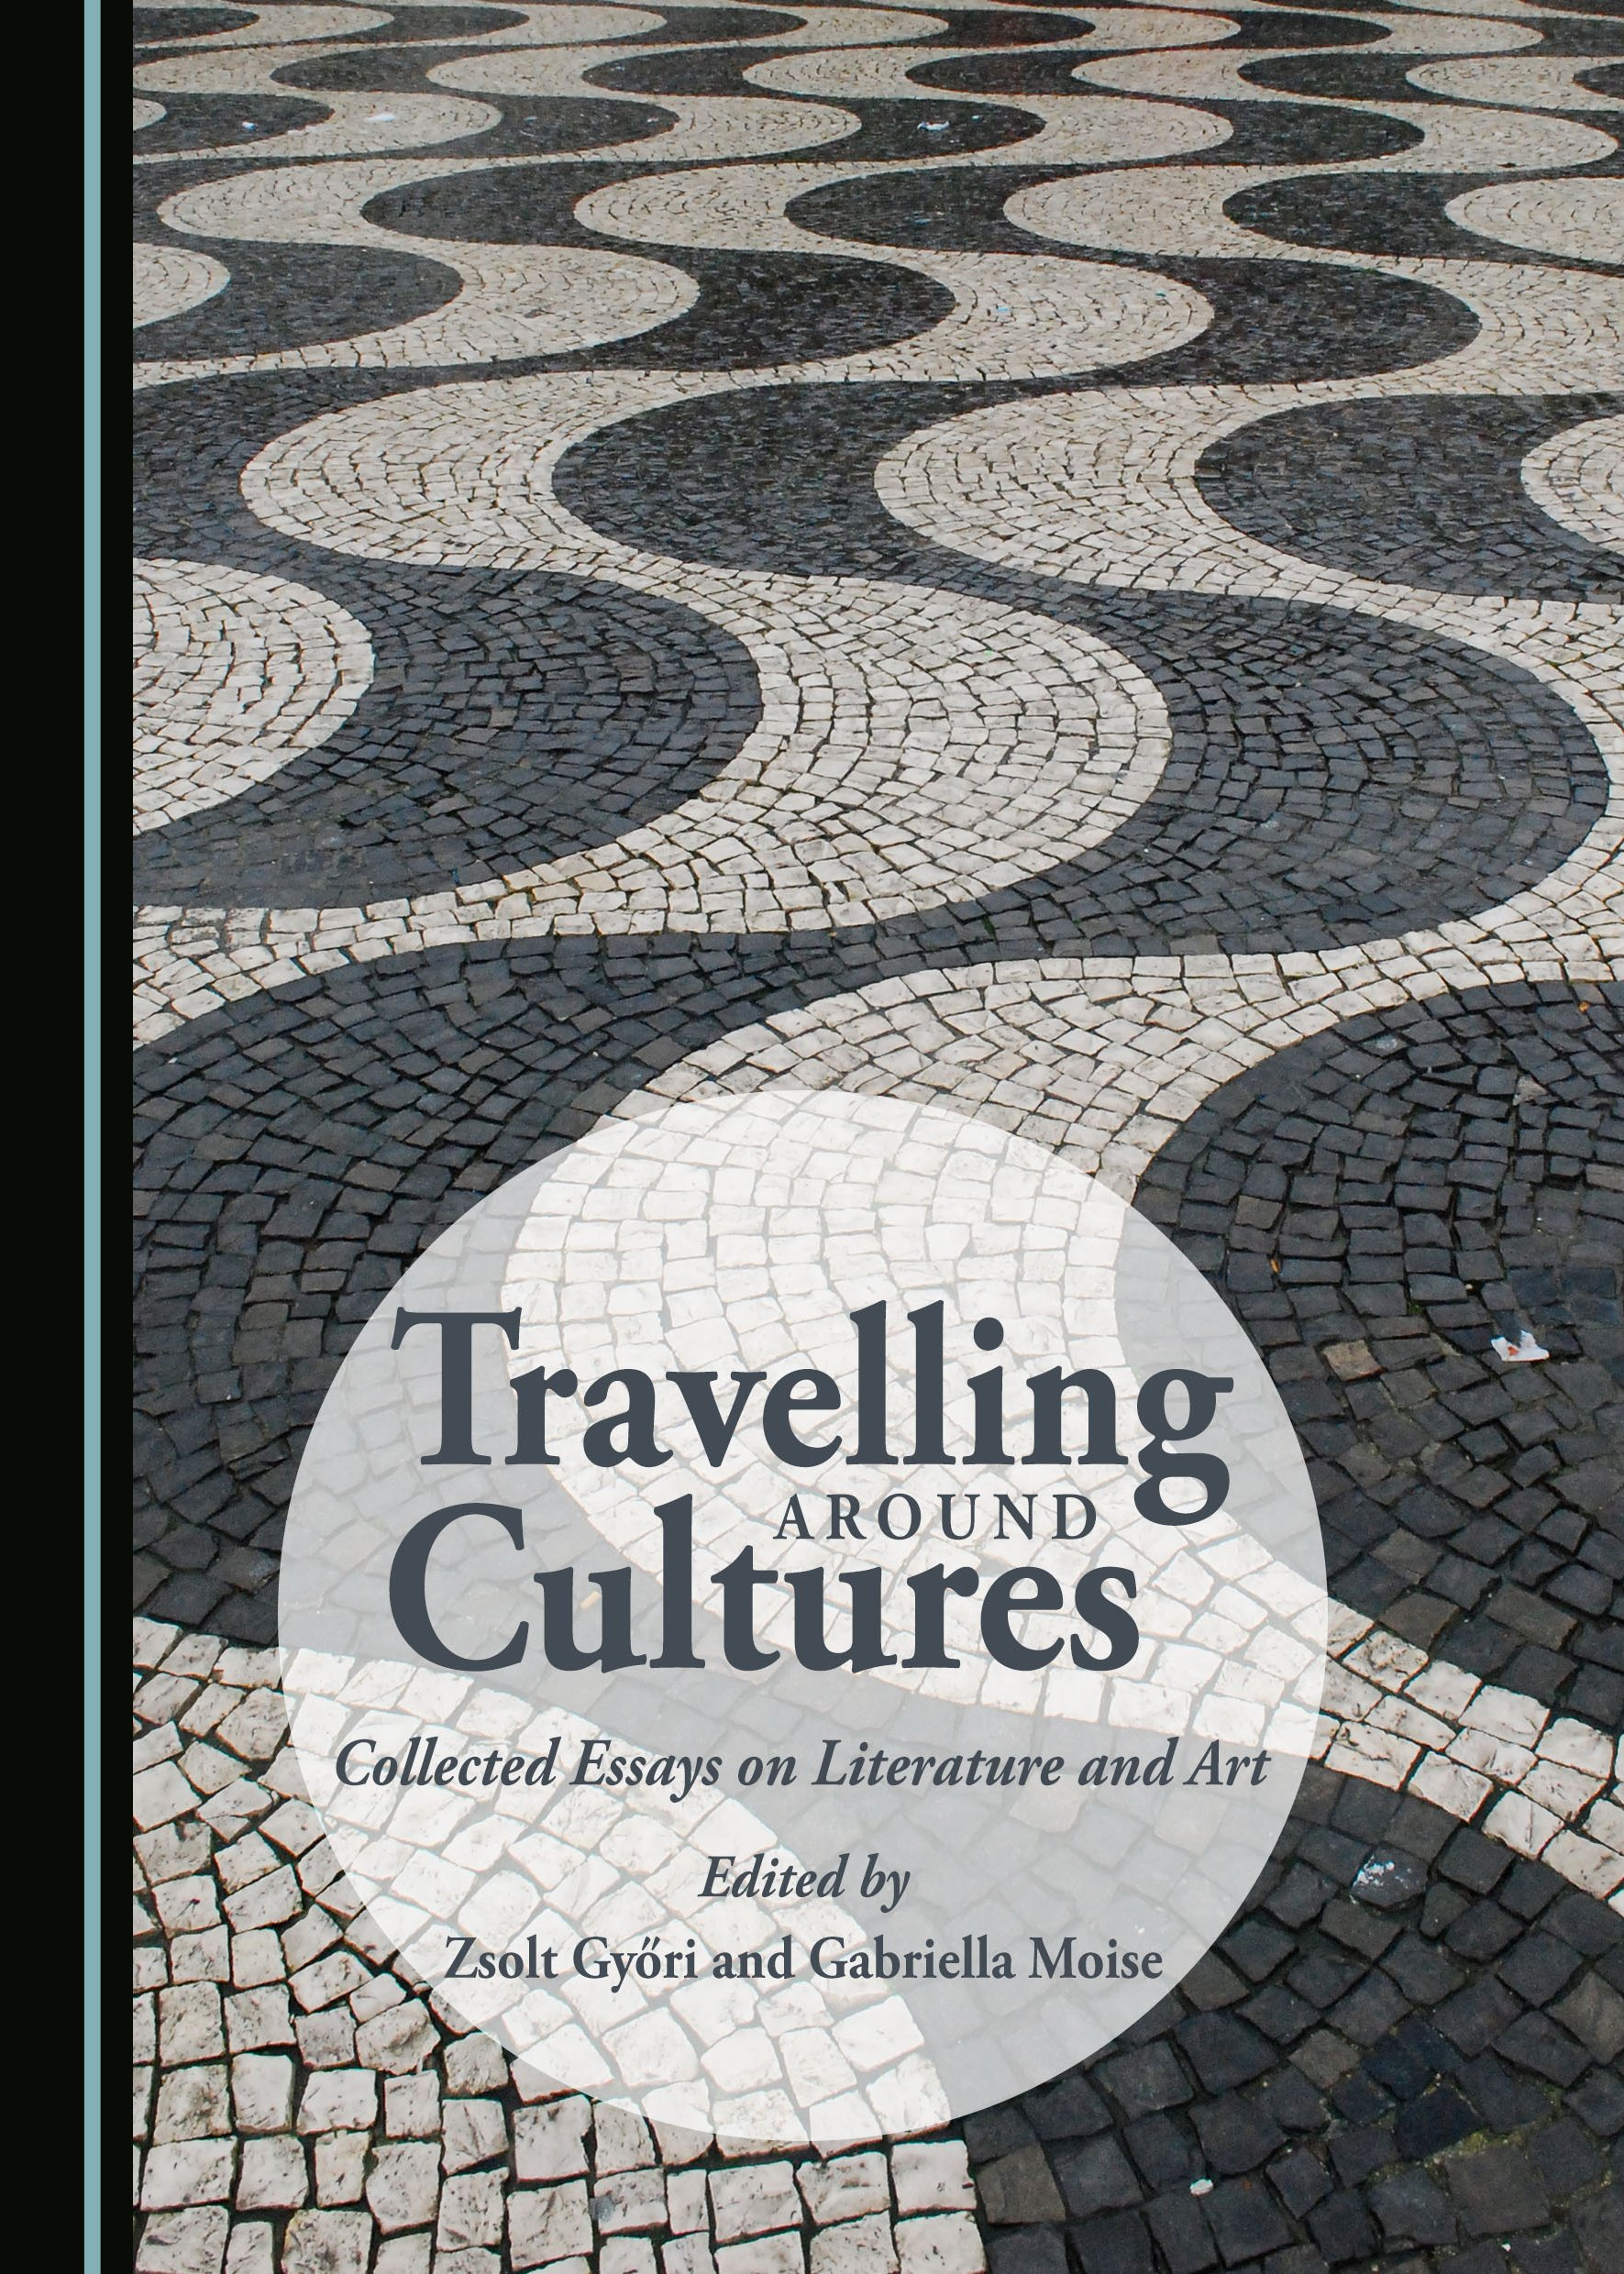 Travelling around Cultures: Collected Essays on Literature and Art